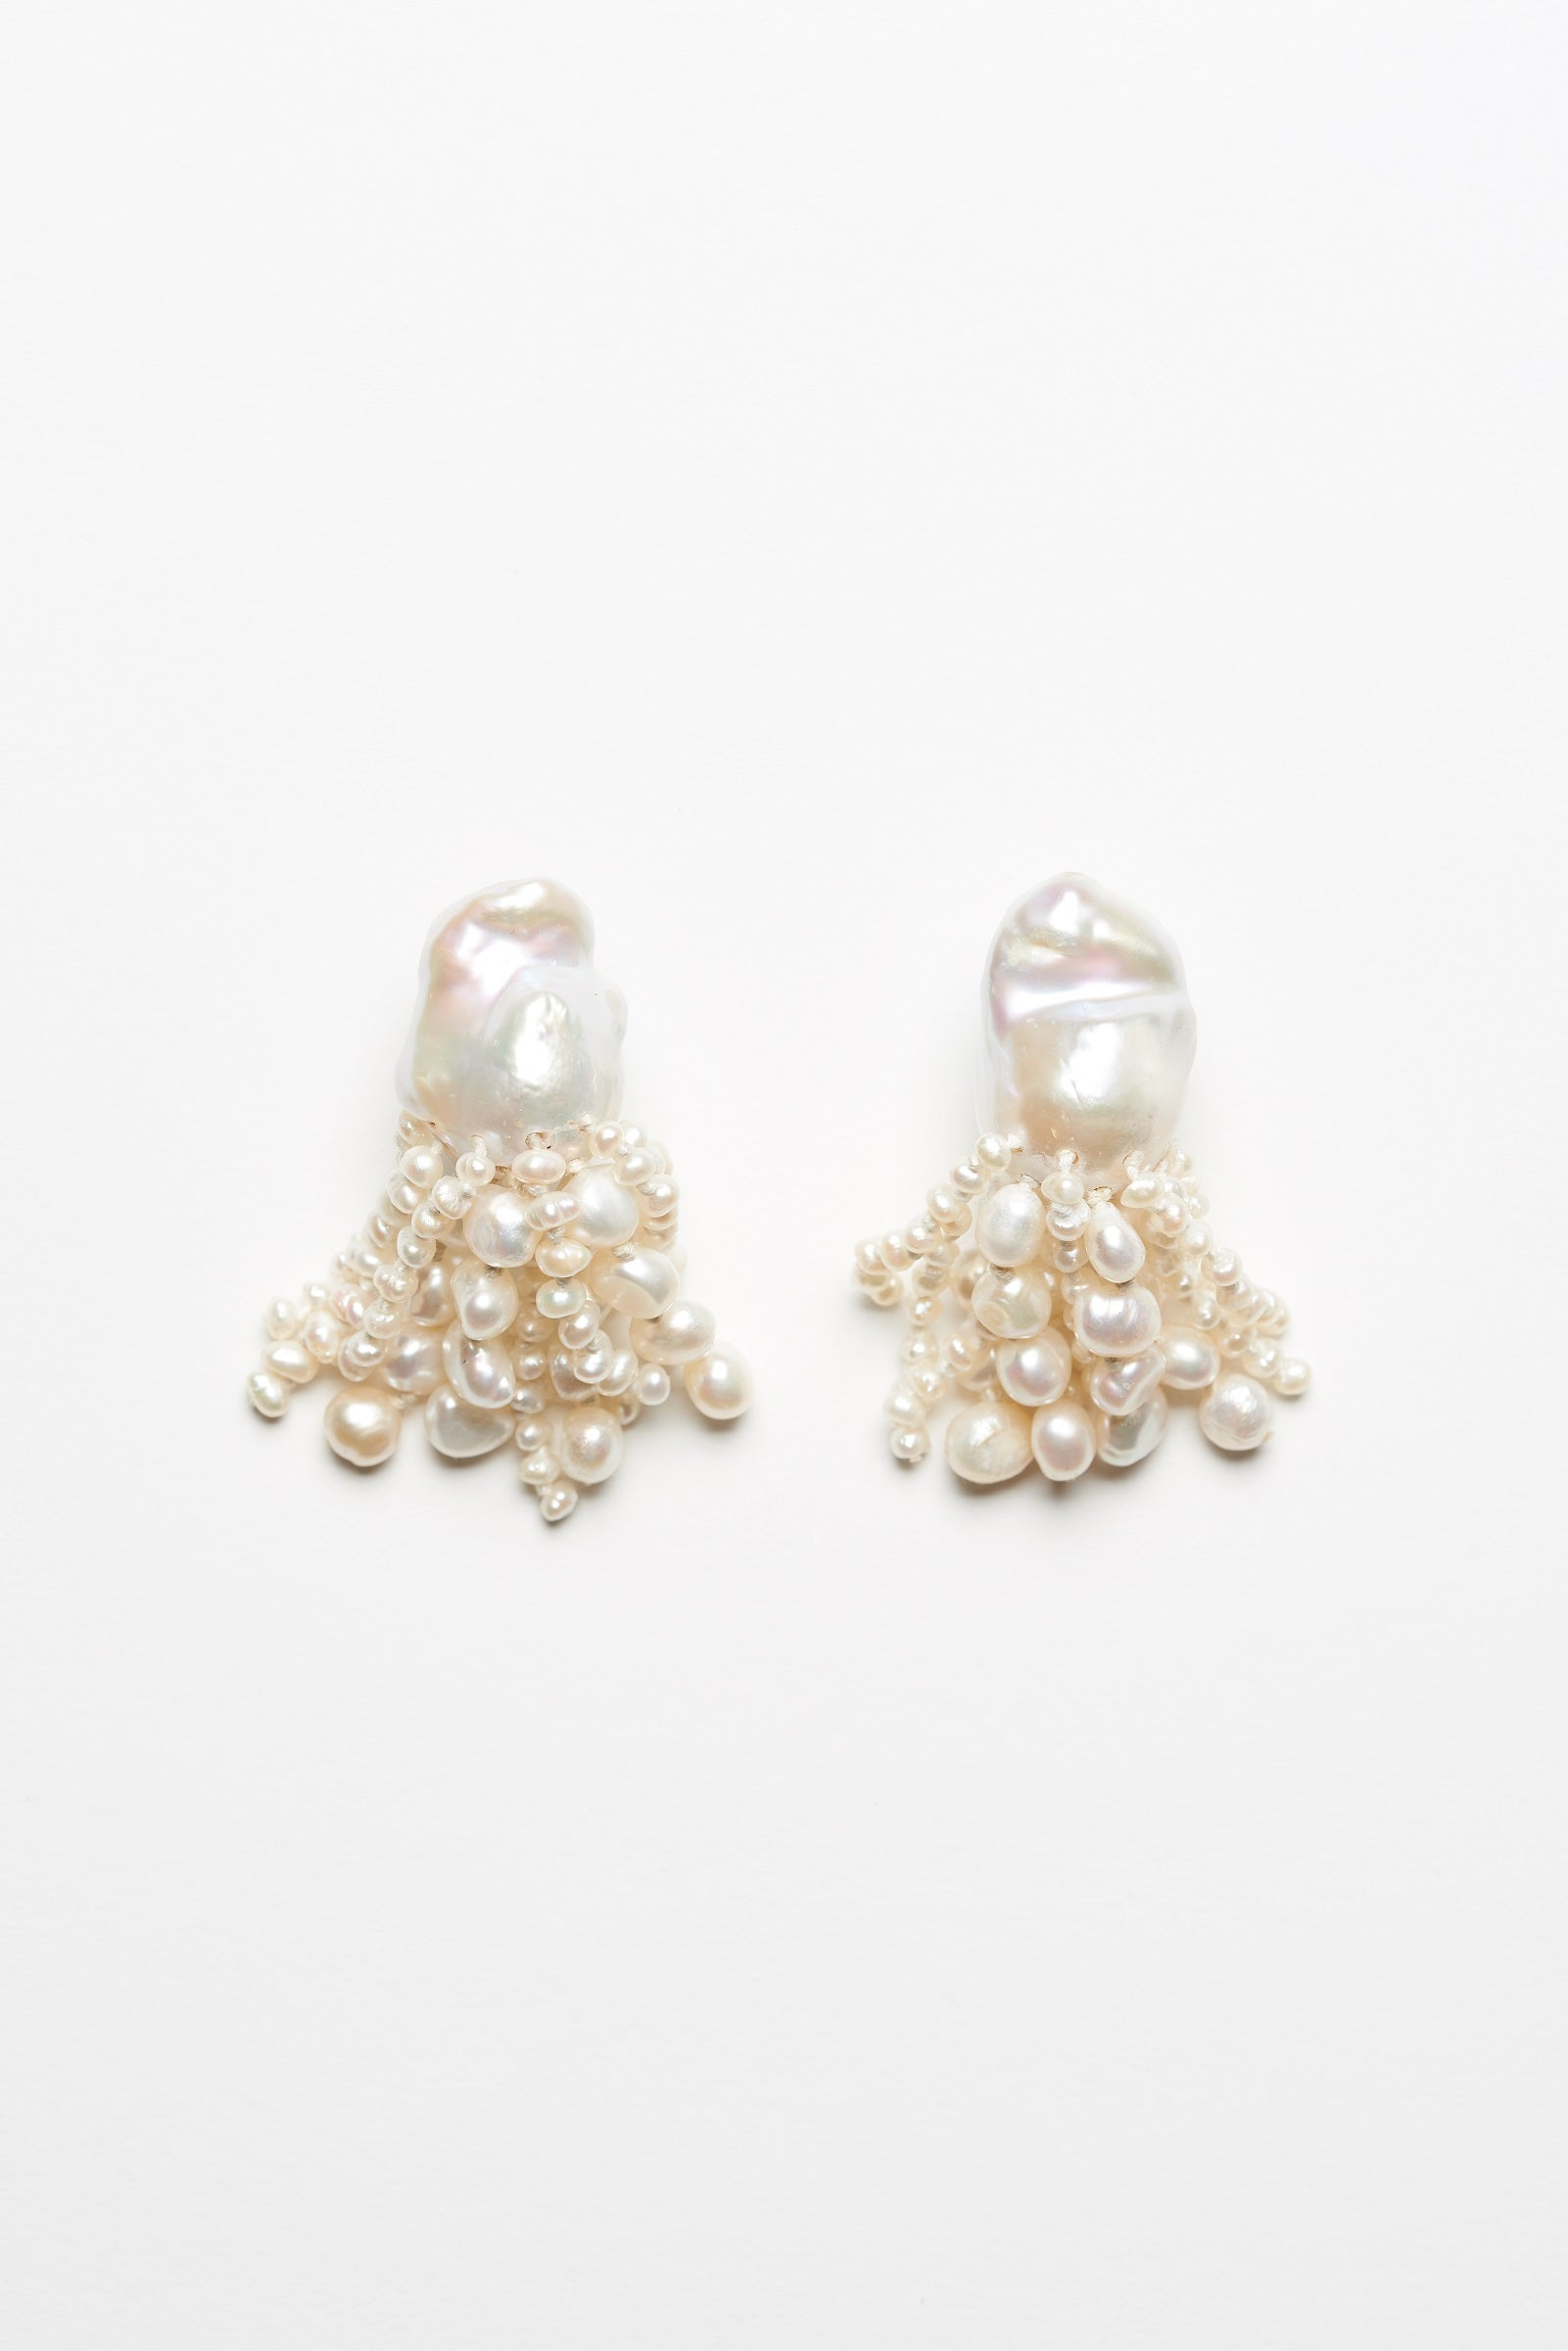 Earclips in baroque and fresh water pearls